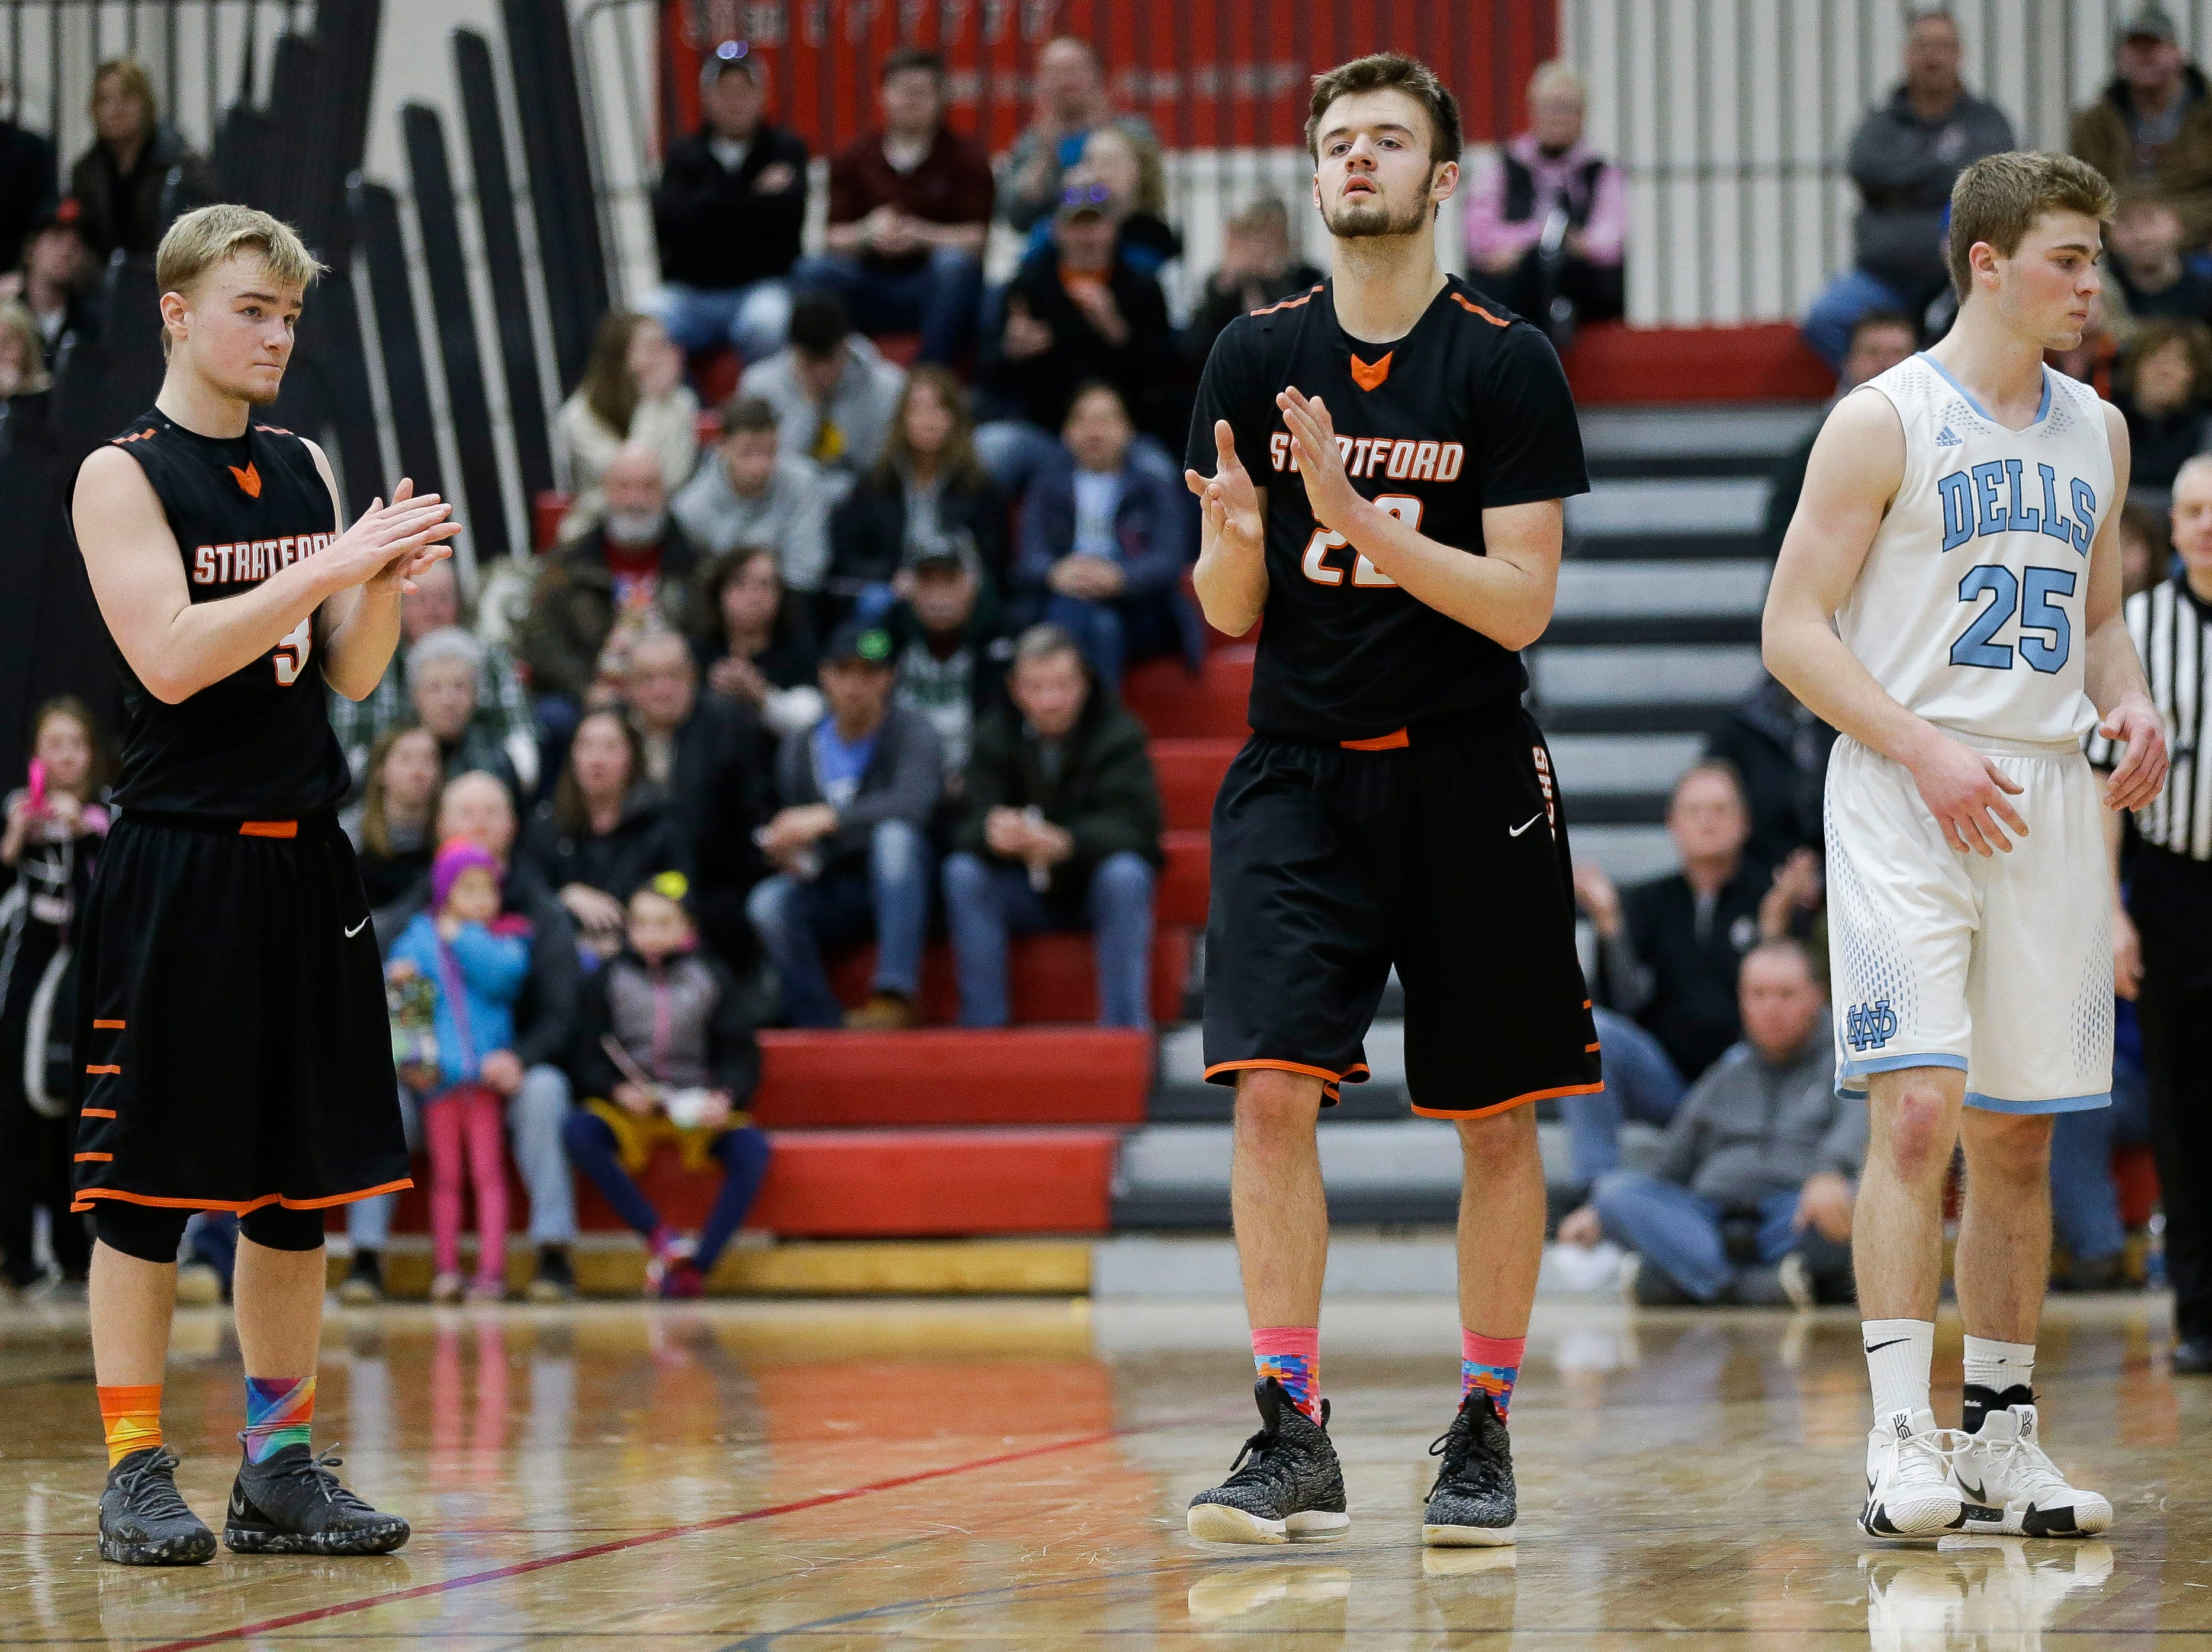 Stratford's Okley Wrensch (3) and Vaughn Breit (22) react after a Wisconsin Dells turnover in a Division 3 sectional semifinal on Thursday, March 7, 2019, at Stevens Point Area High School in Stevens Point, Wis. Tork Mason/USA TODAY NETWORK-Wisconsin